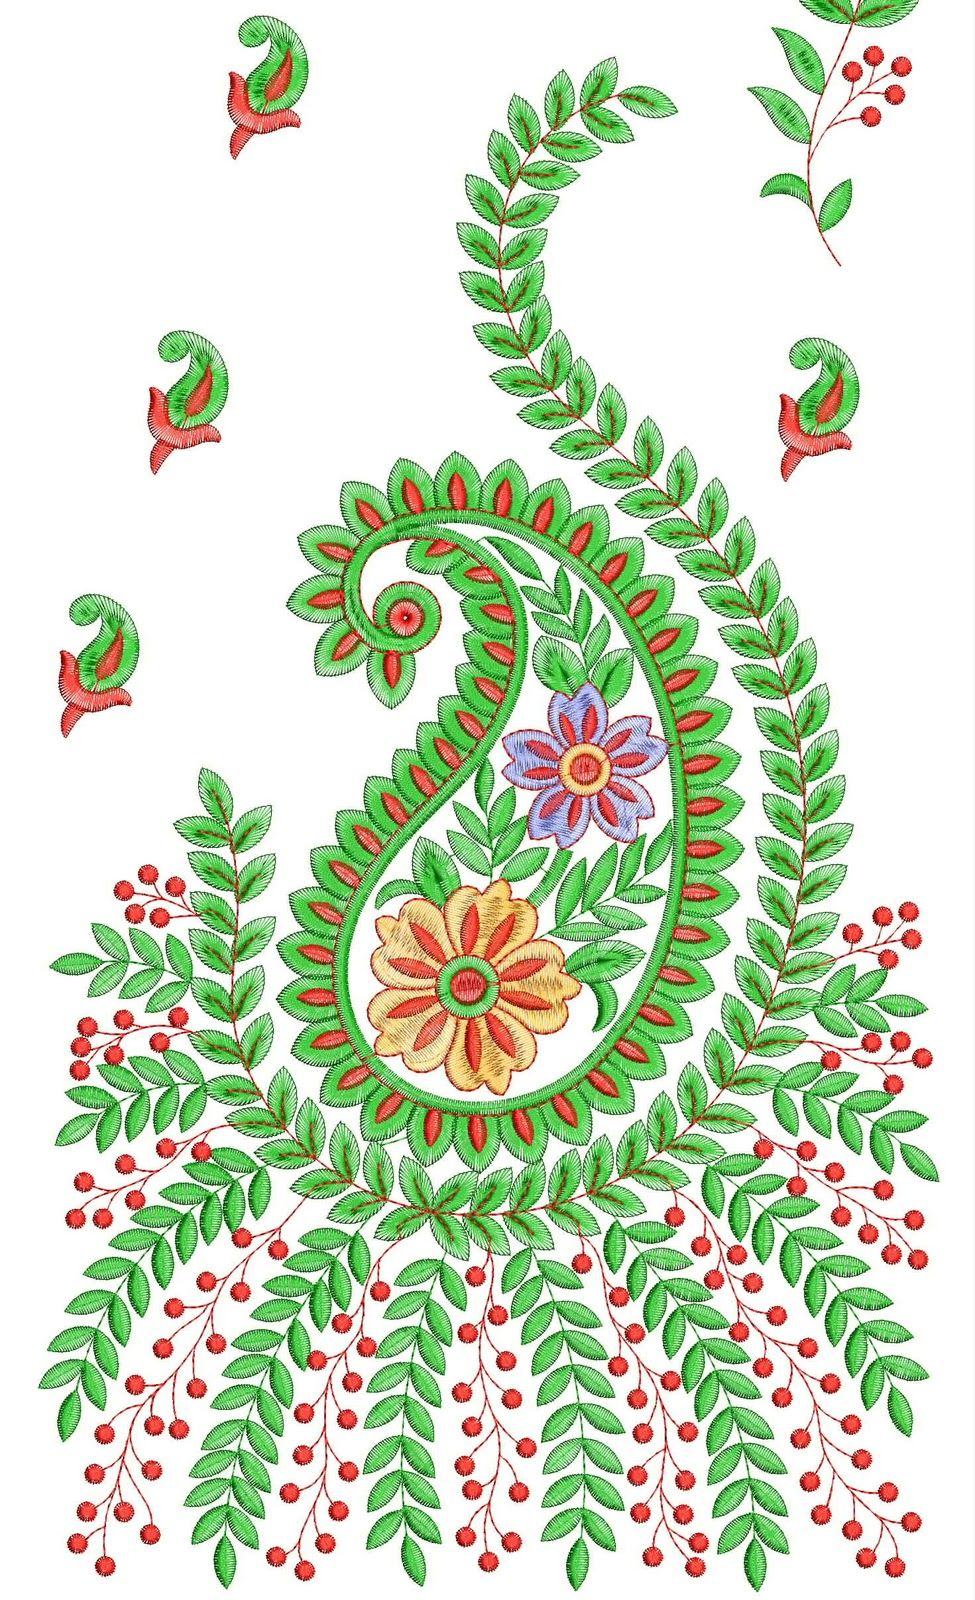 embroidery patterns free downloads provided designs are having